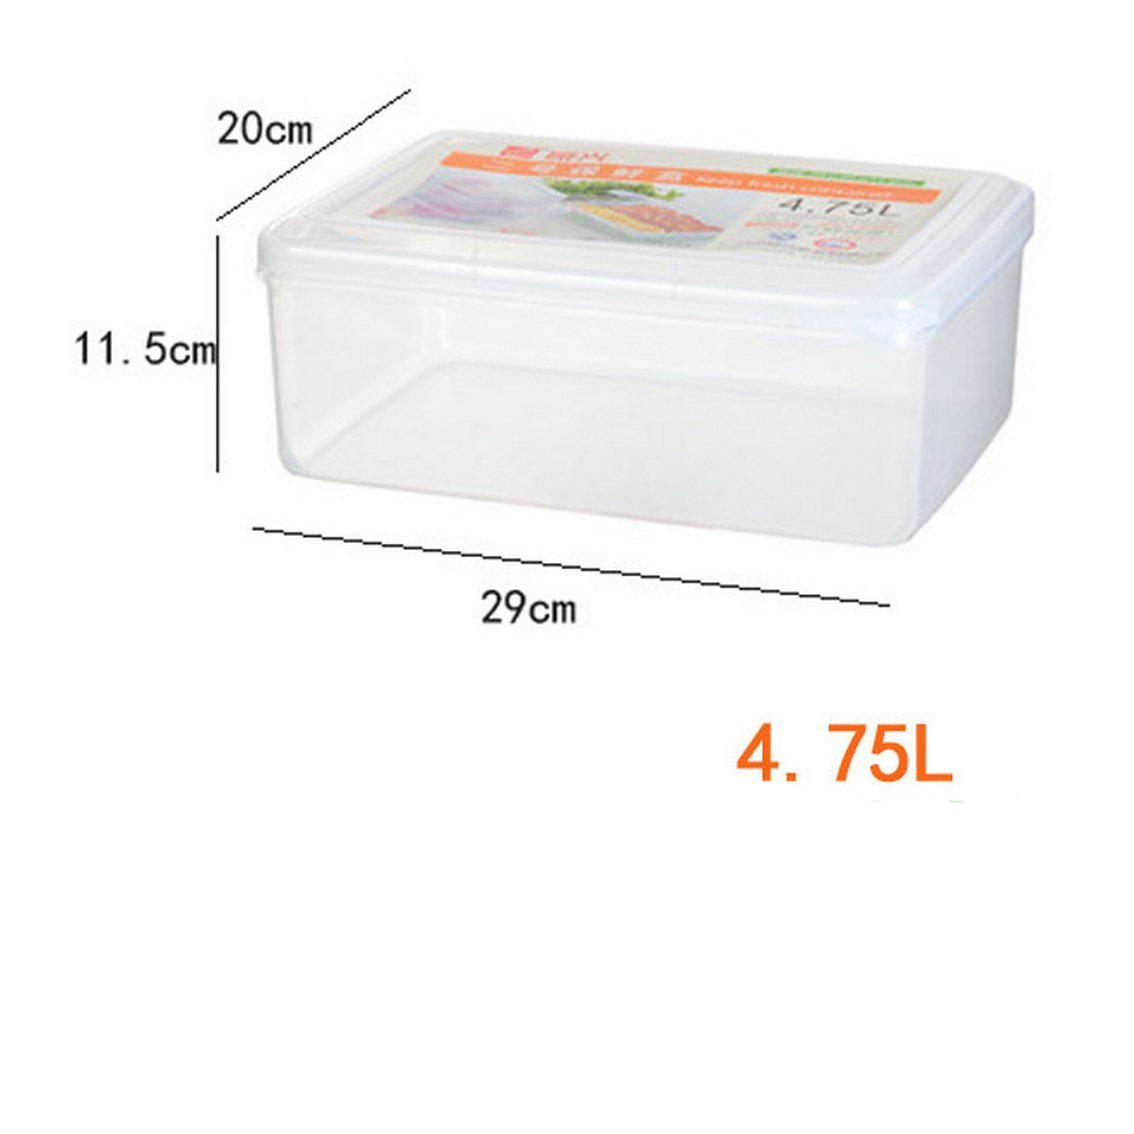 jii2030shann Plastic storage box sticky end dumpling boxes microwave box refrigerated box refrigerator crisper dumplings box refrigerator crisper dumplings box crisper refrigerator crisper cold boxes